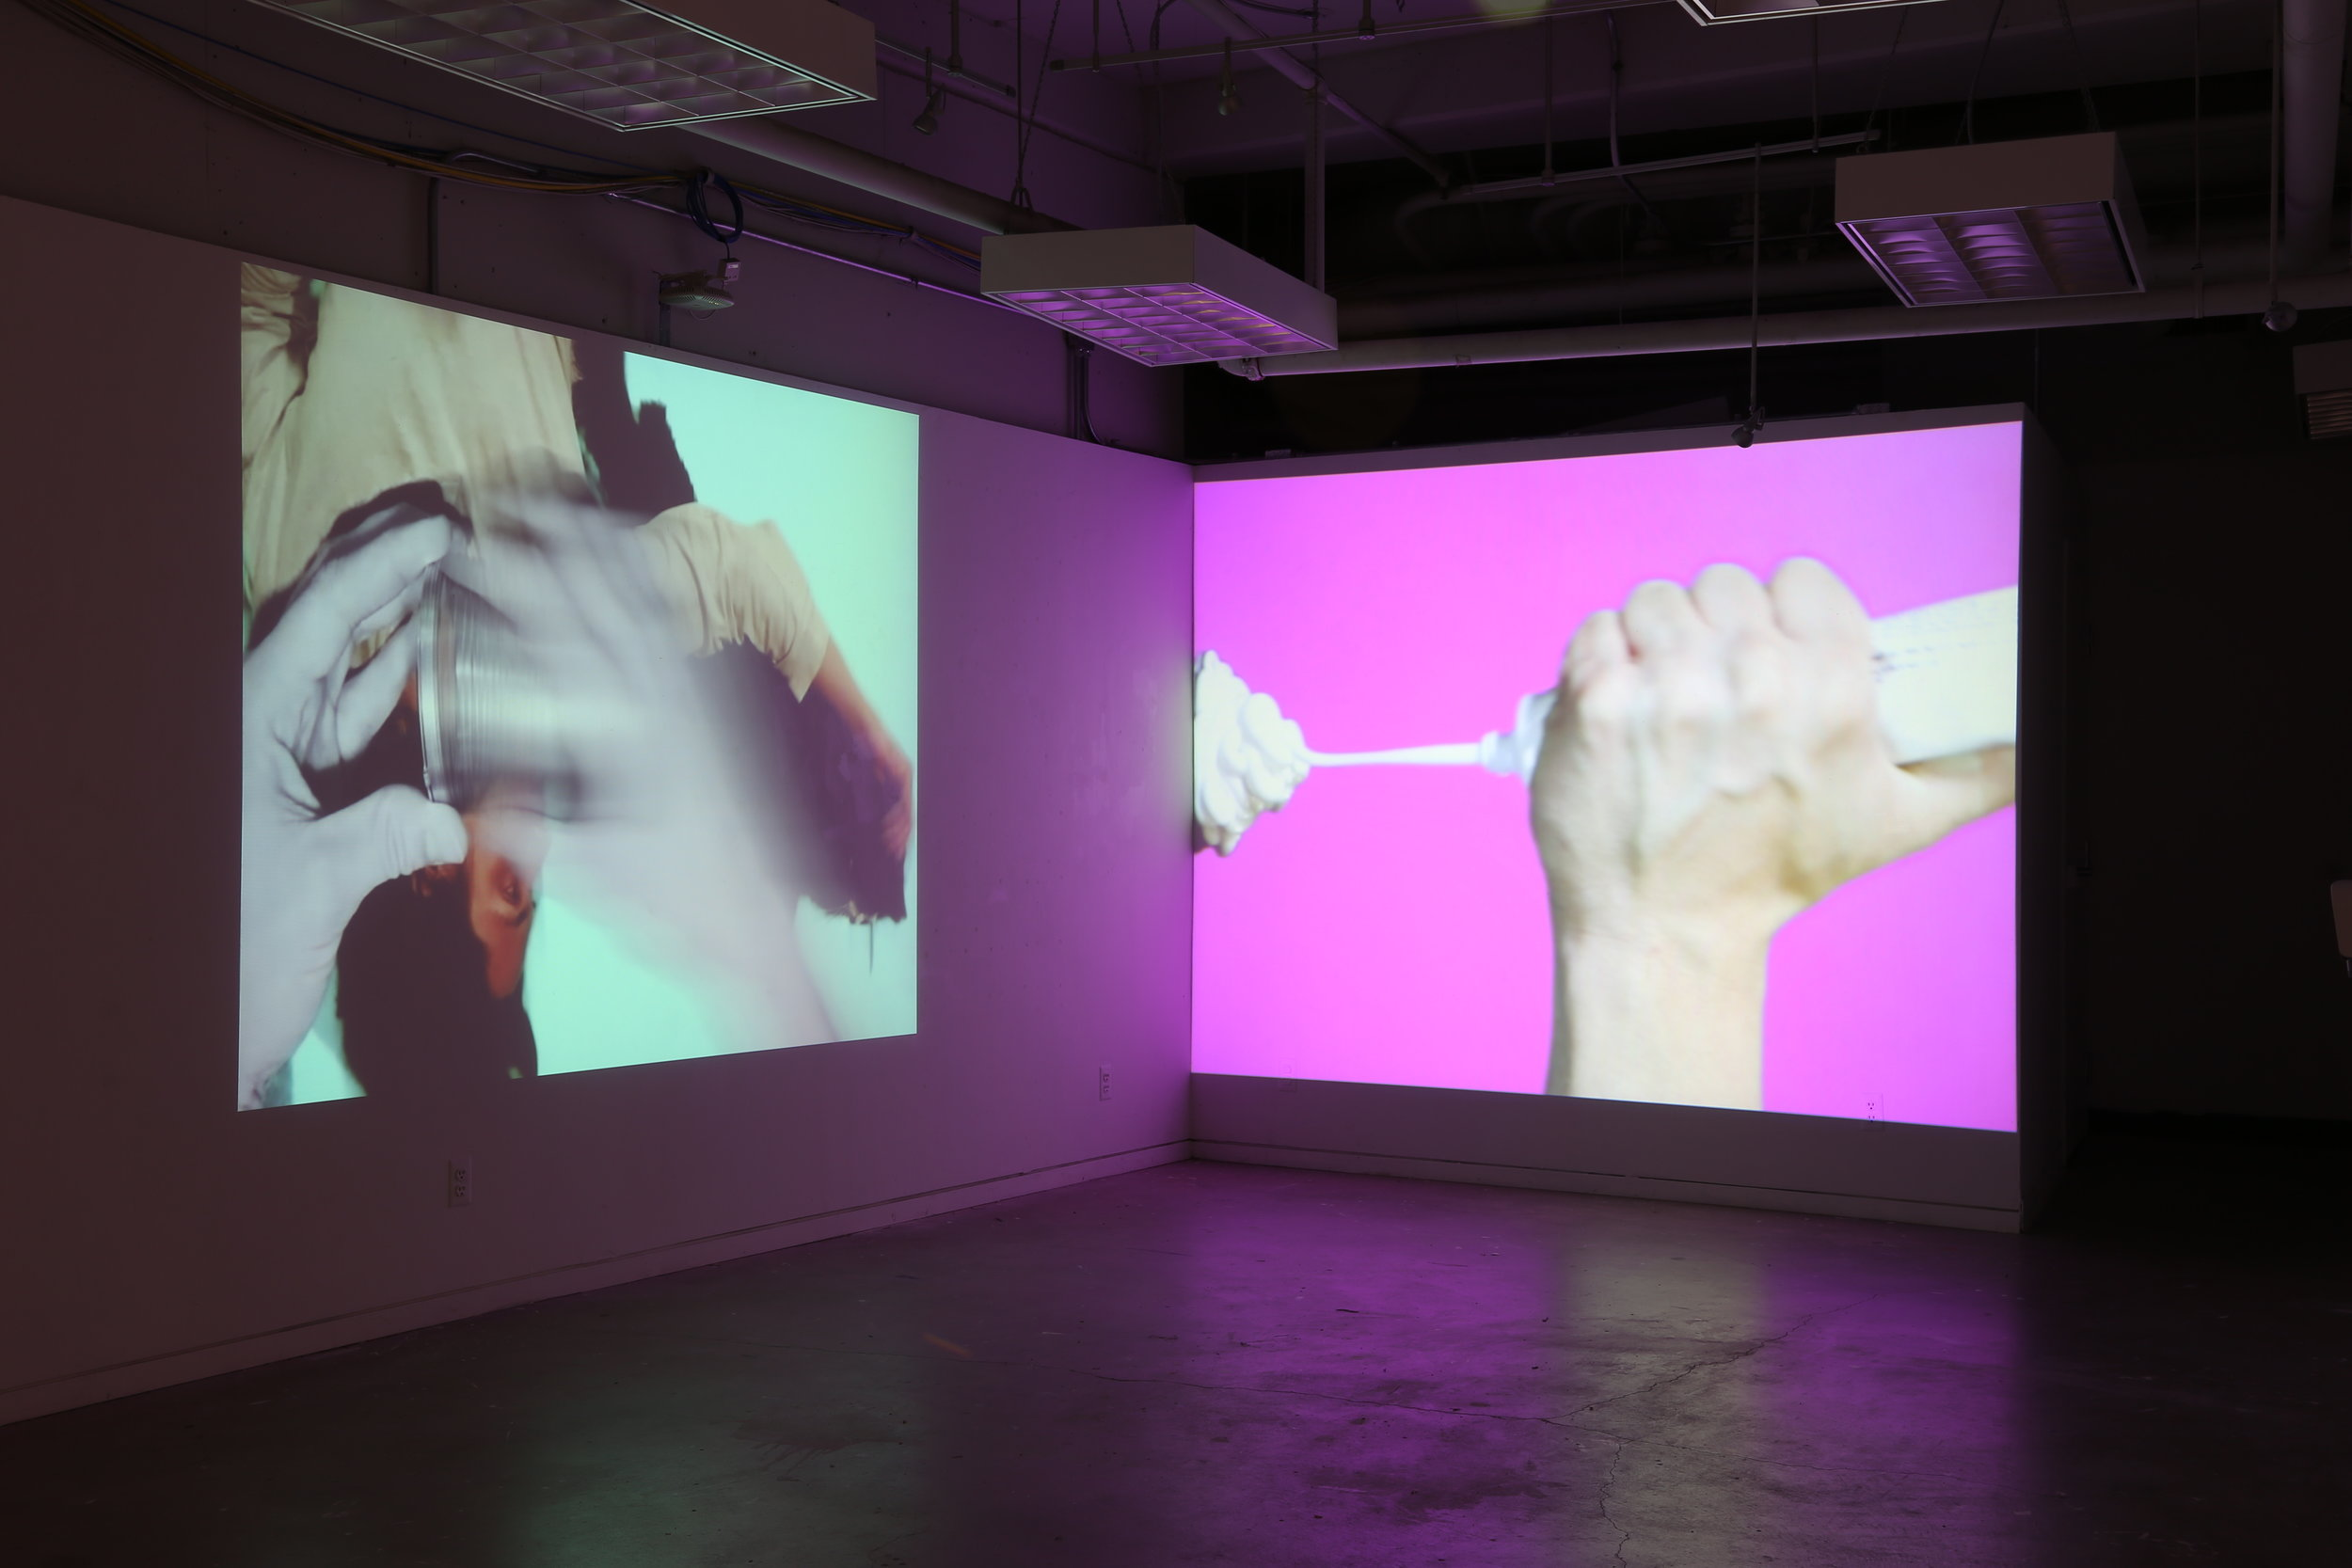 Installation shot of  Meagan  and  A Quiet Place